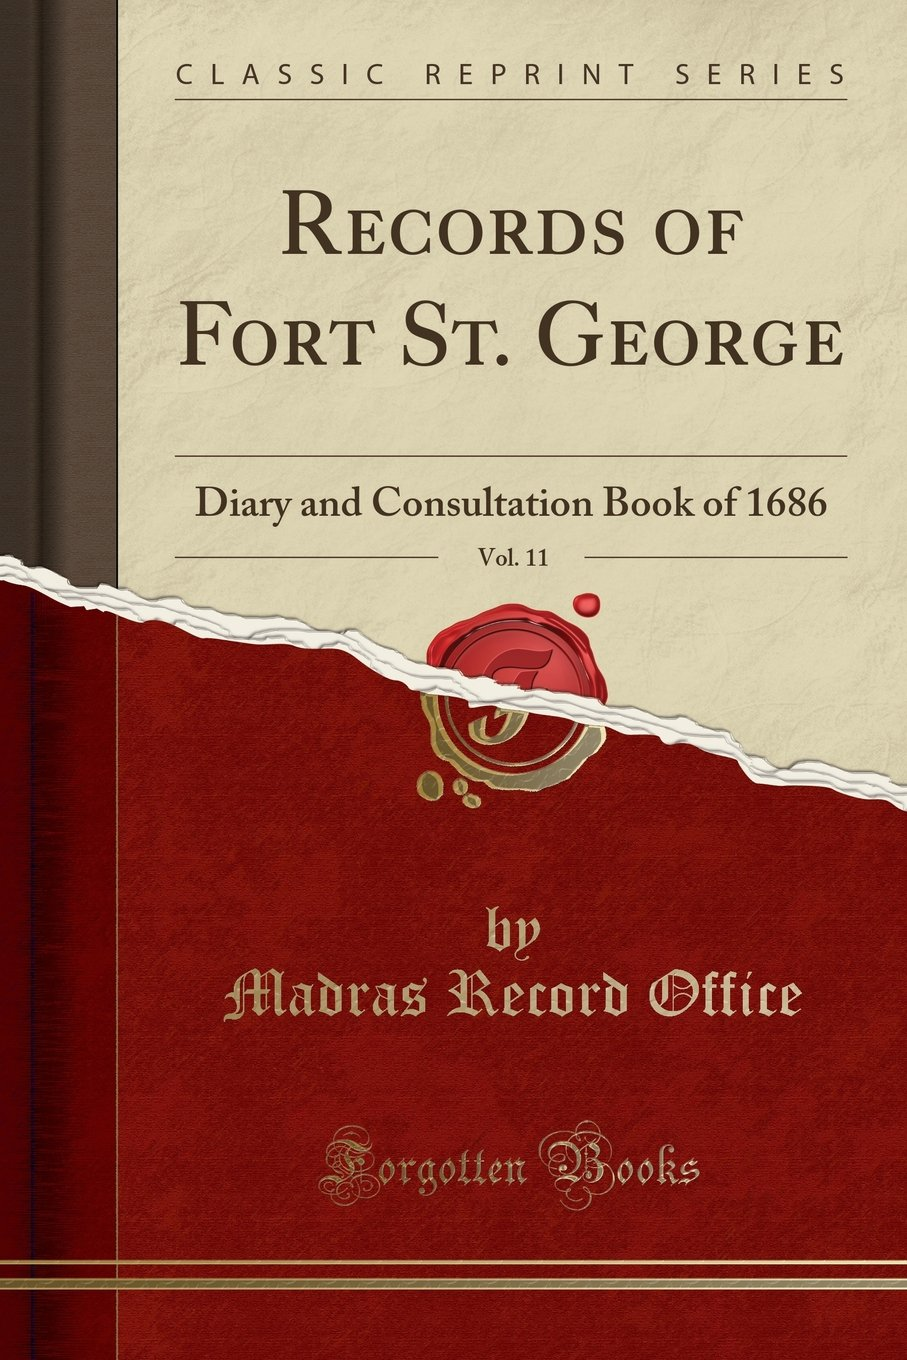 Records of Fort St. George, Vol. 11: Diary and Consultation Book of 1686 (Classic Reprint)